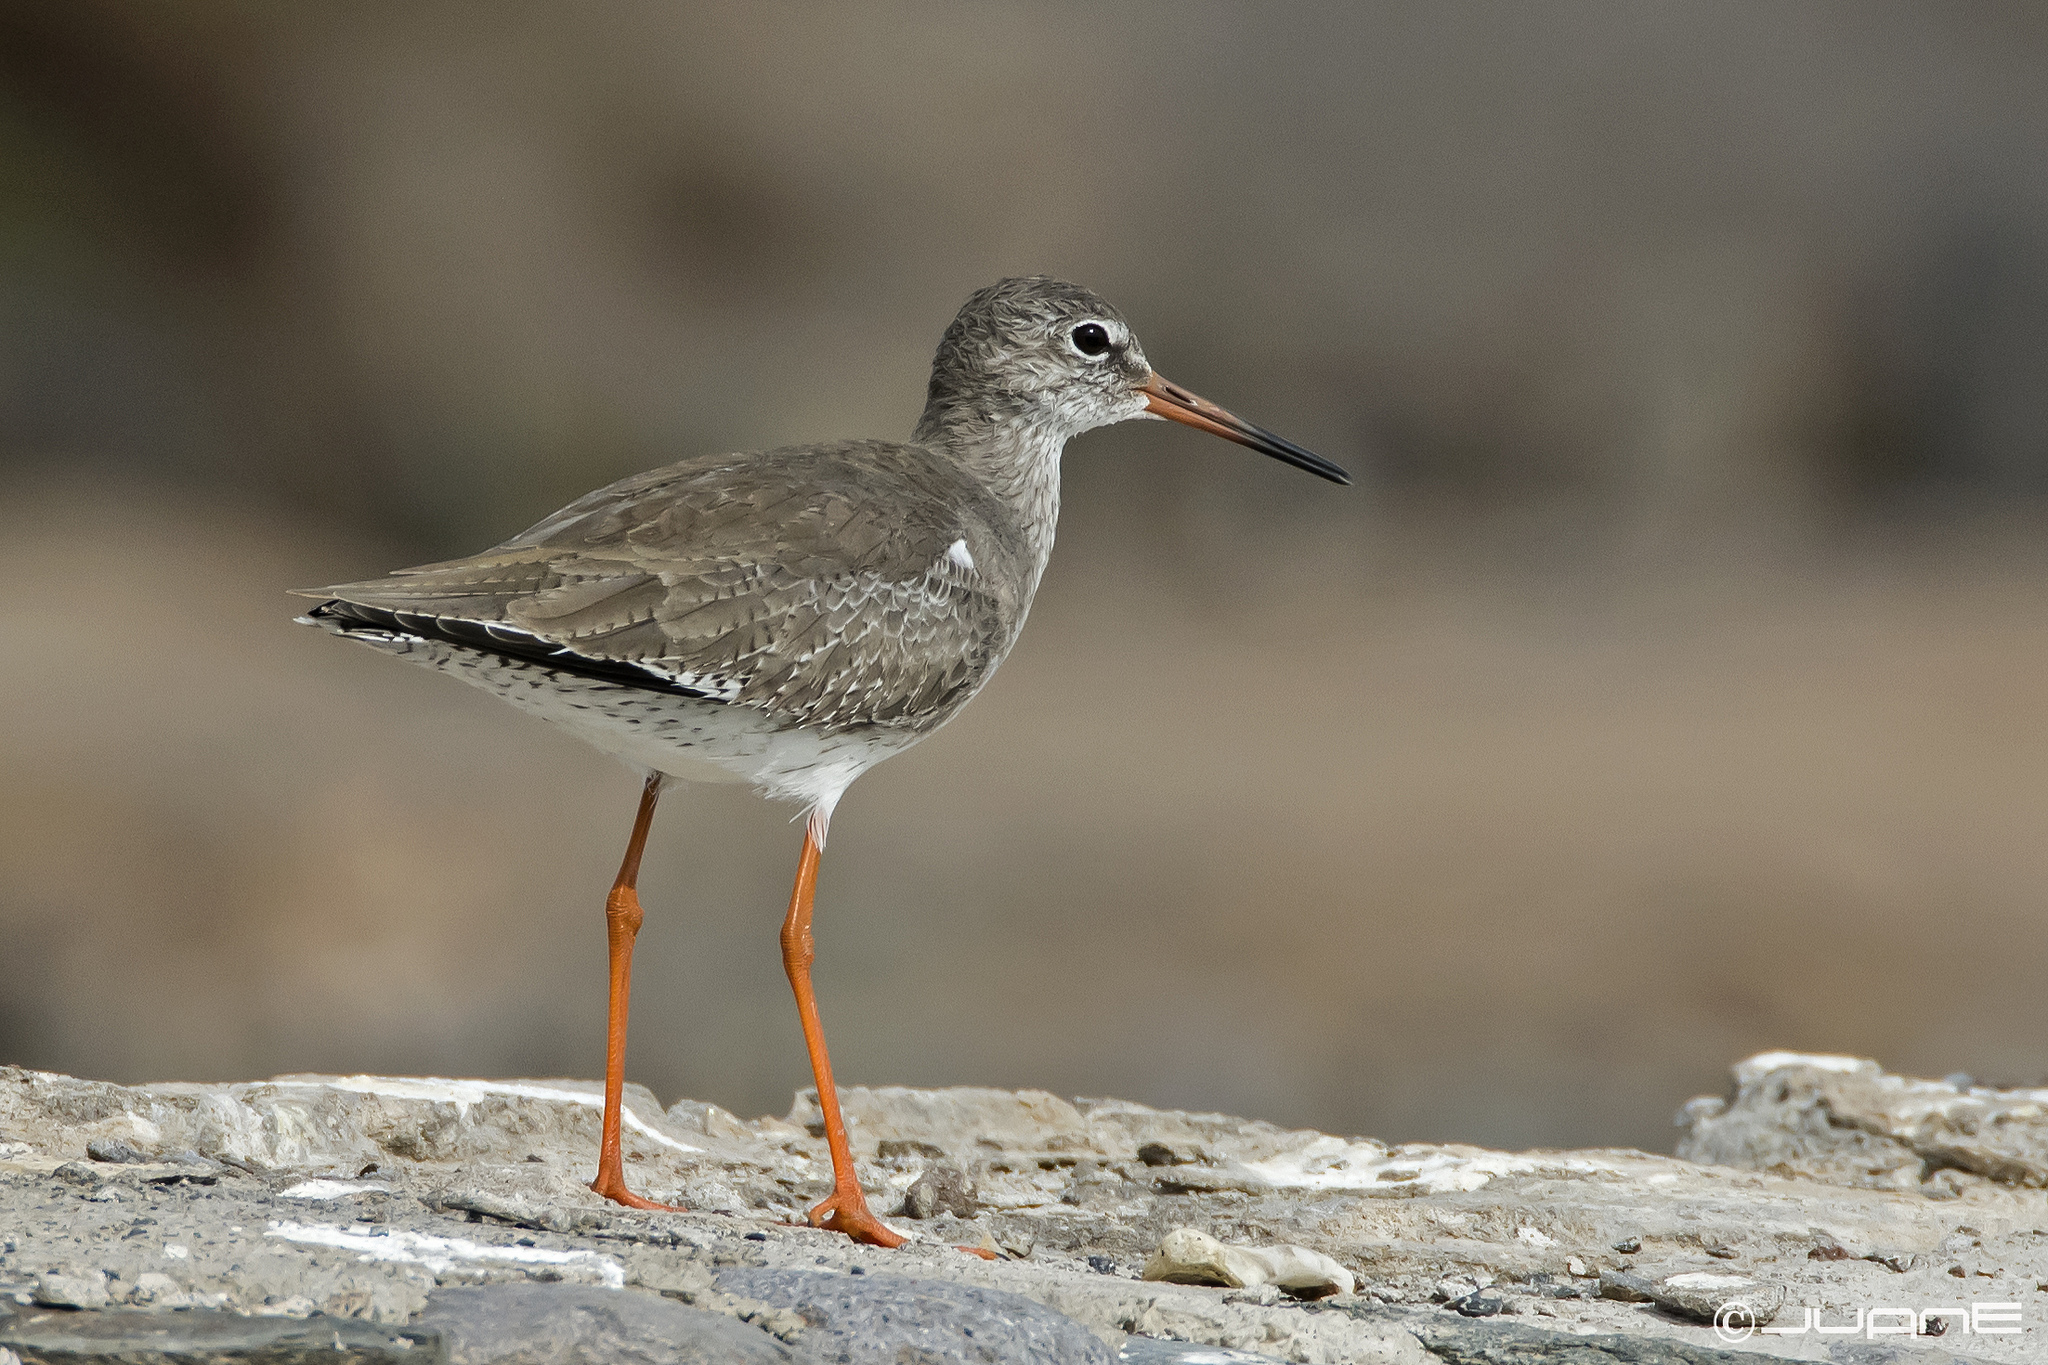 Tringa totanus, Common Redshank, Redshank